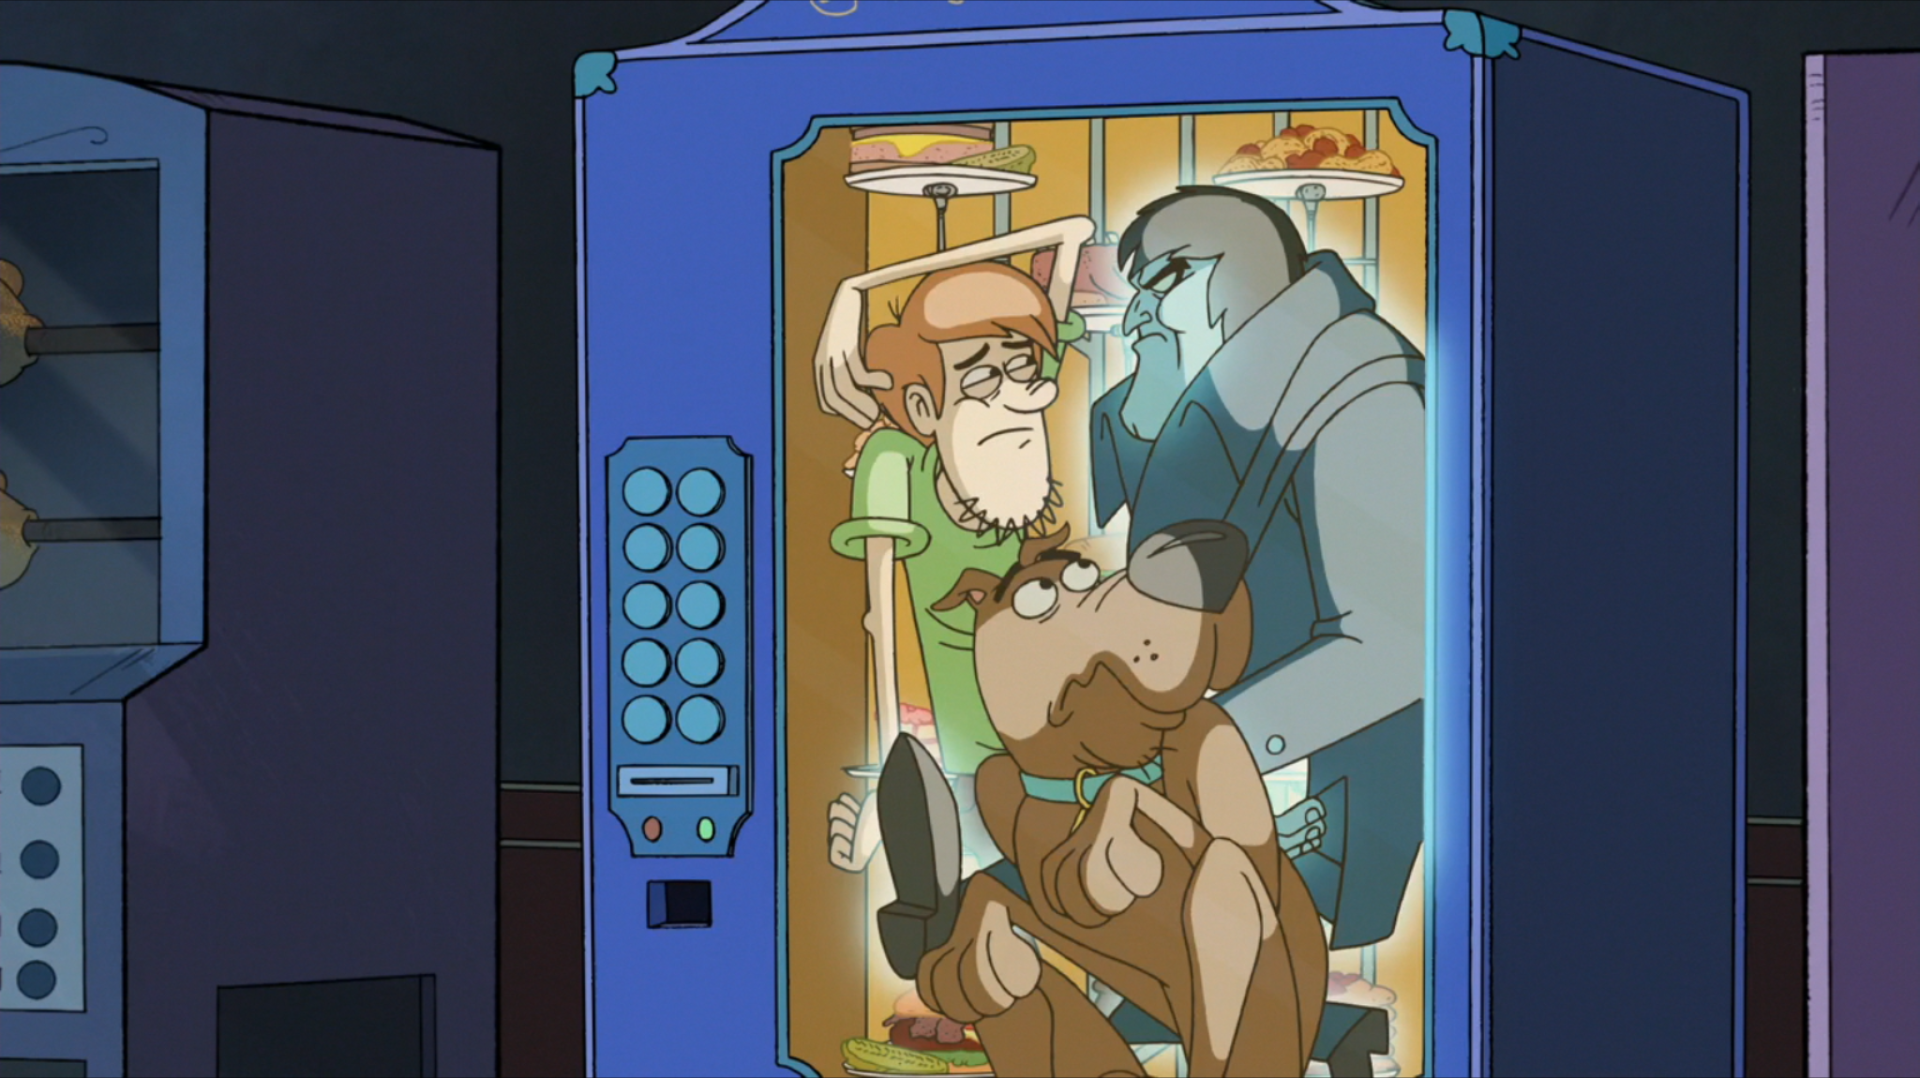 http://vignette1.wikia.nocookie.net/scoobydoo/images/3/30/Stuck_in_vending_machine_with_Ghost_of_Elias_Kingston.png/revision/